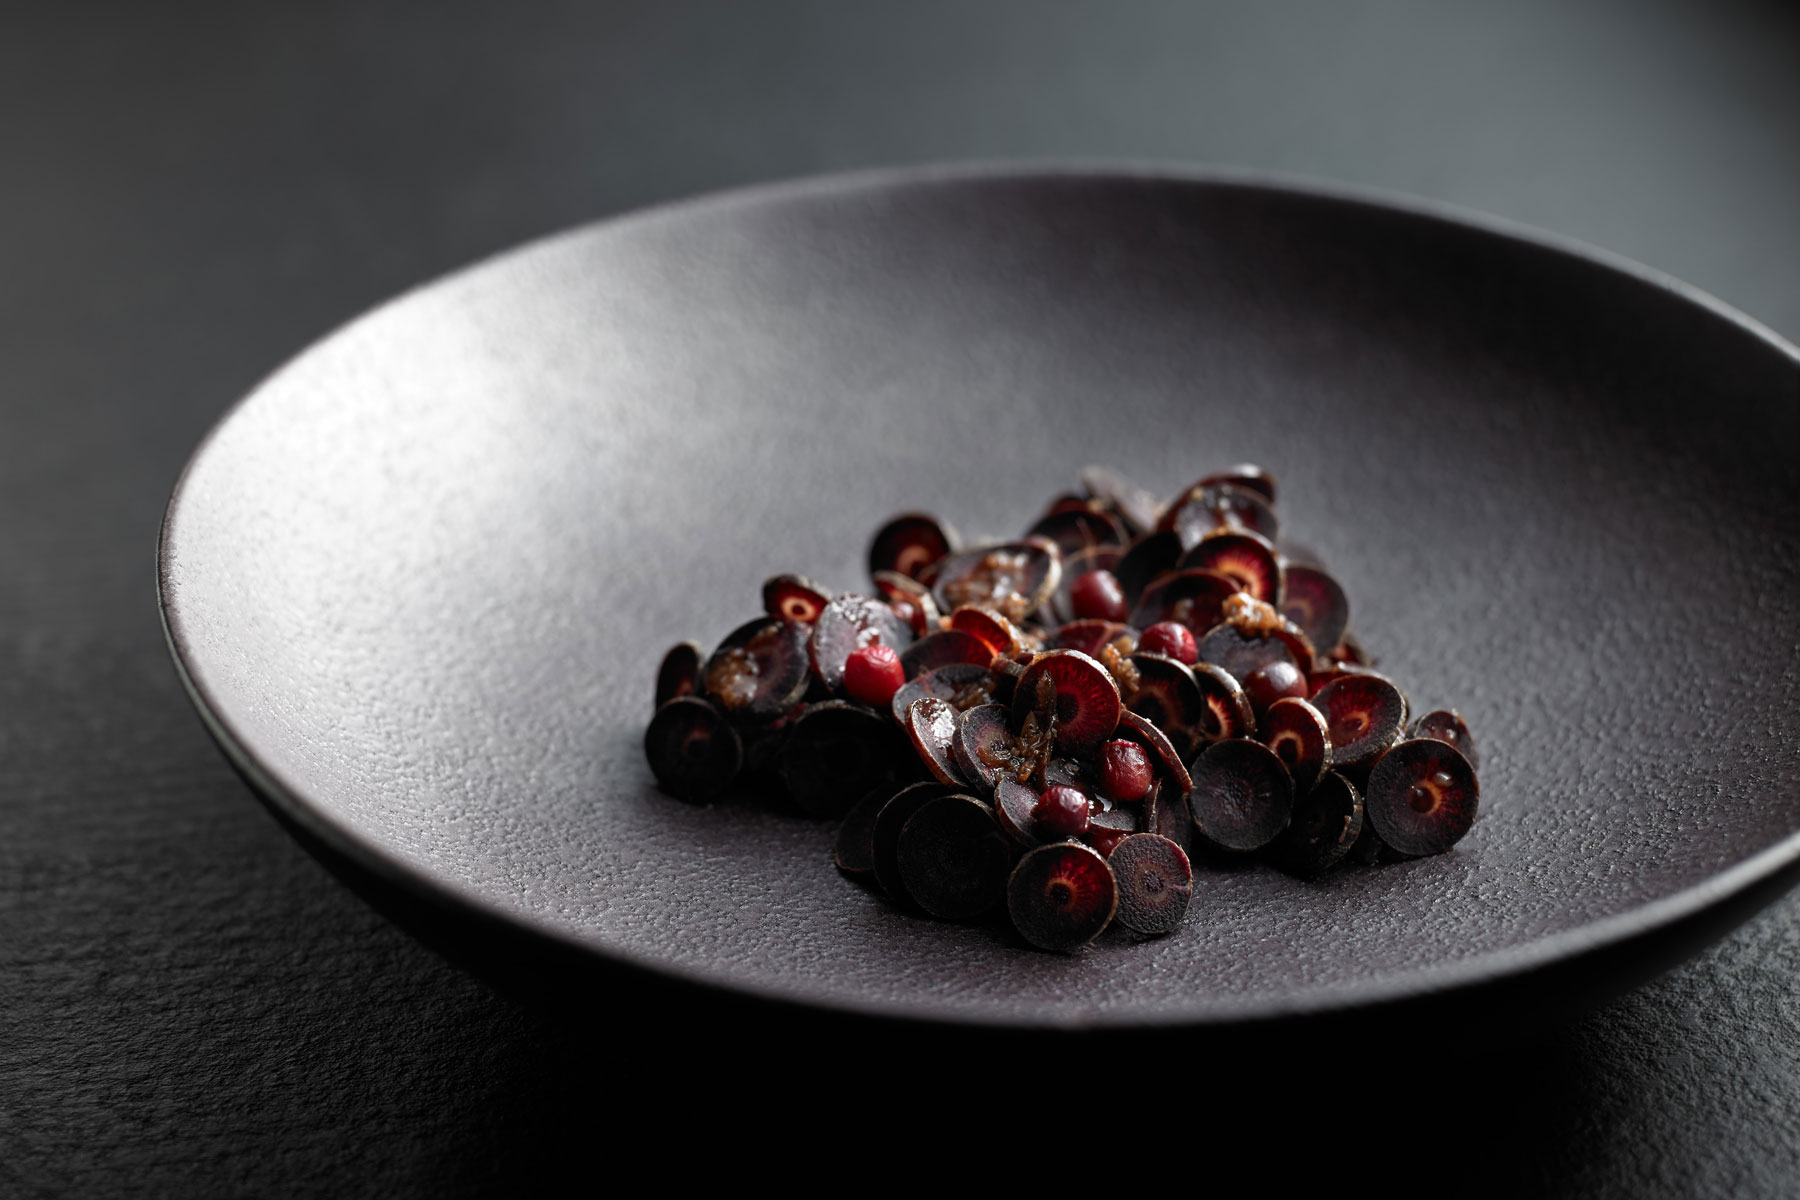 Attica - The restaurant of influential chef Ben Shewry, Attica, is multi-award winning. The only Australian establishment to make the The World's 50 Best Restaurants, Attica offers a luxurious, nature-inspired experience. Be sure to book early to secure a place.74 Glen Eira Road, Ripponlea